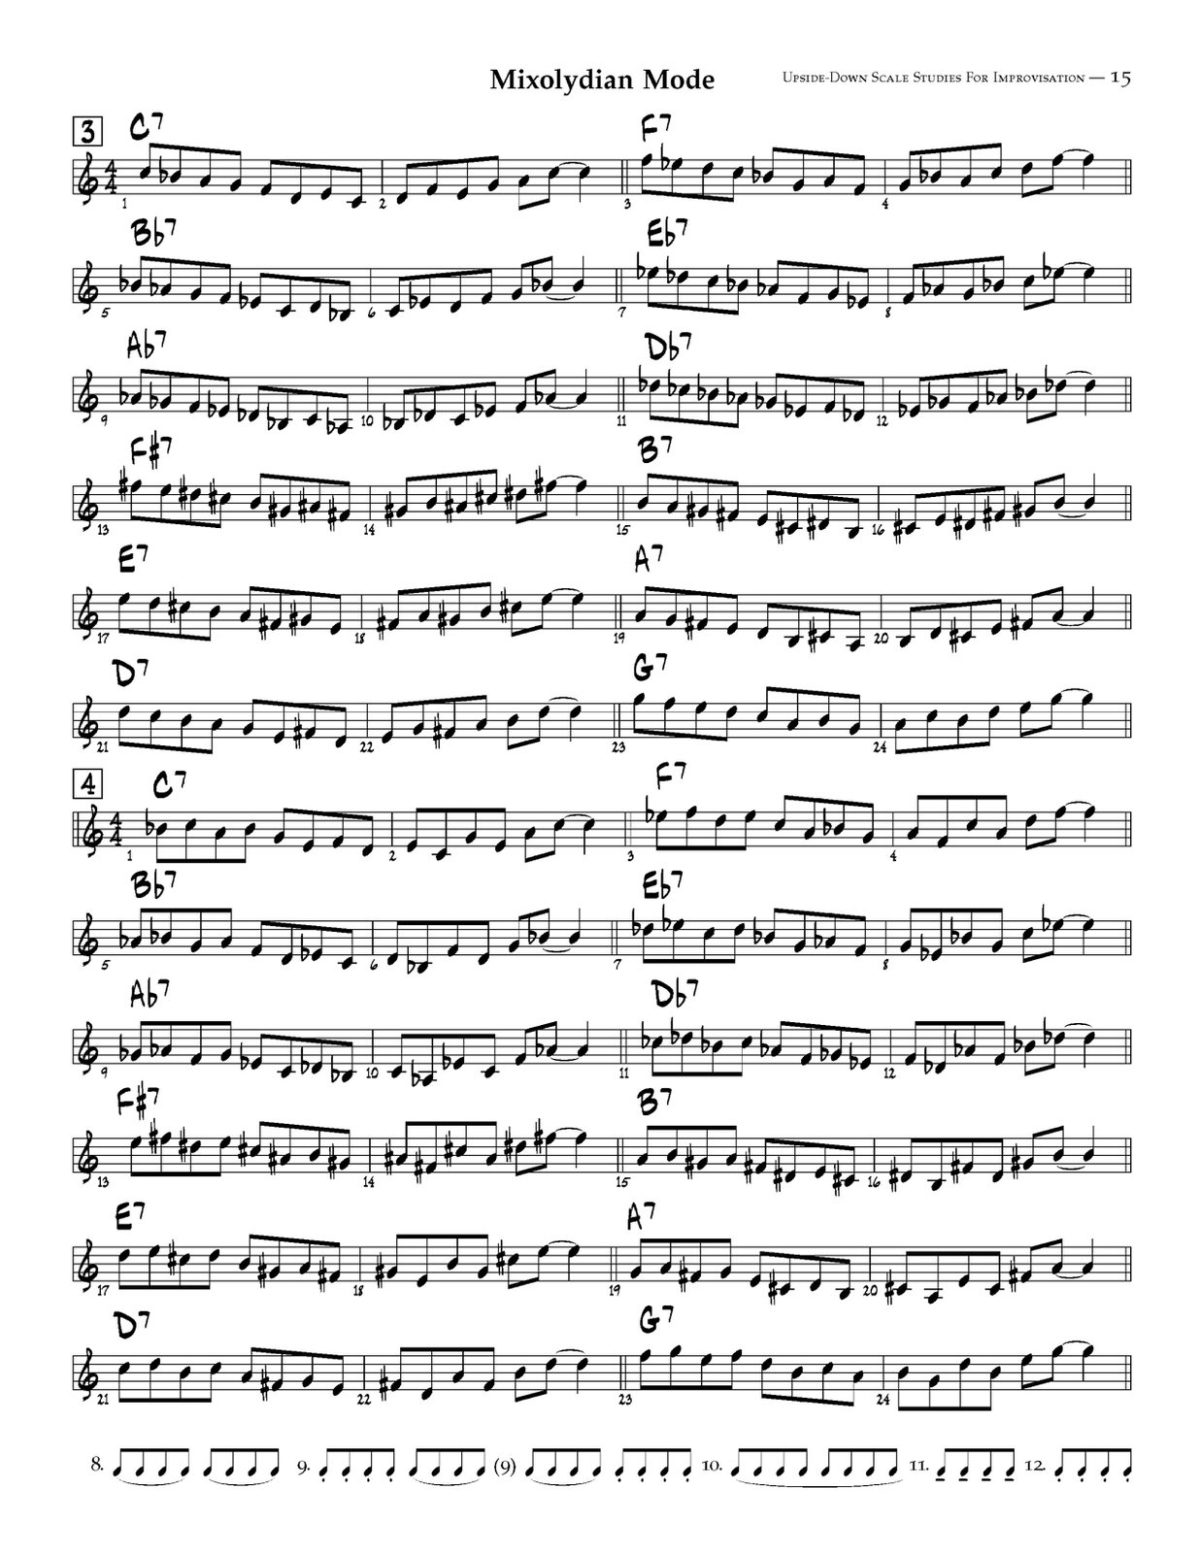 Willey, Upside Down Scale Studies for Improv-p21